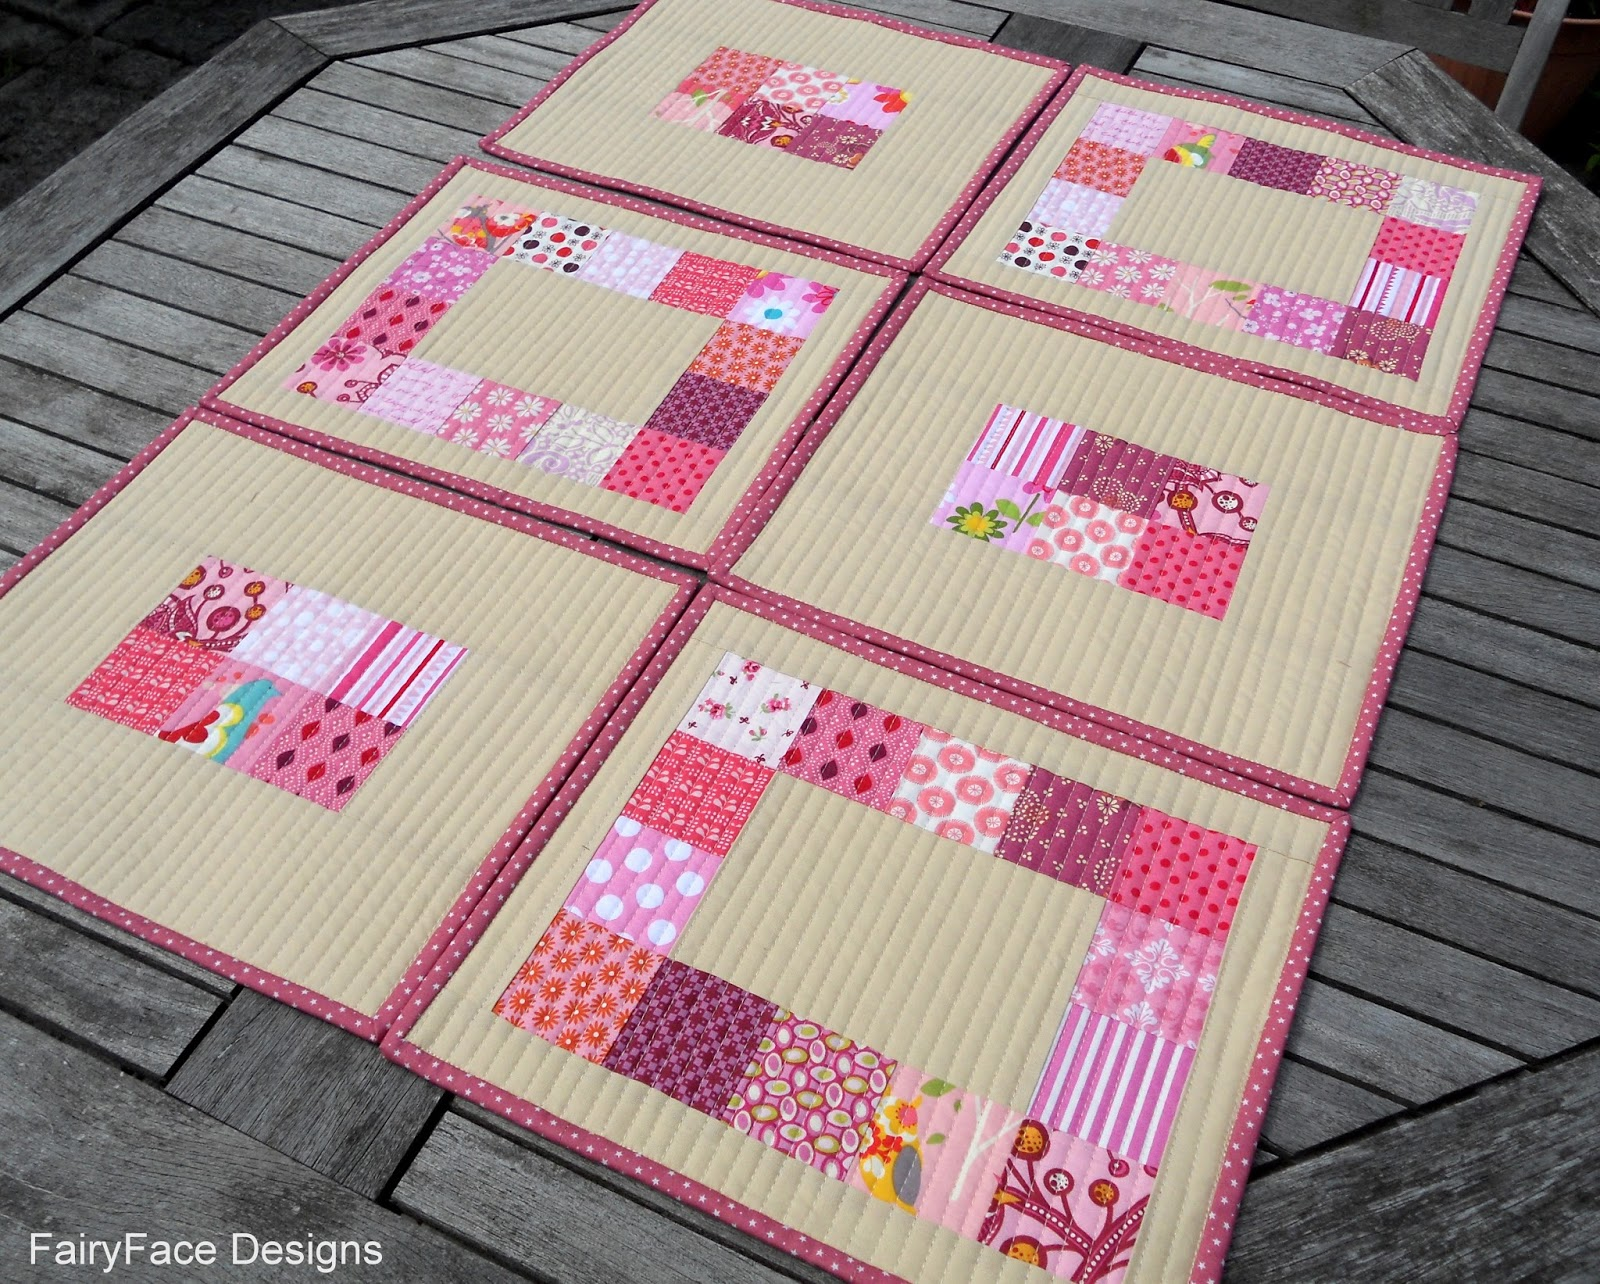 FairyFace Designs: {Easy Peasy} Quilted Placemats Tutorial : easy quilted placemat patterns - Adamdwight.com